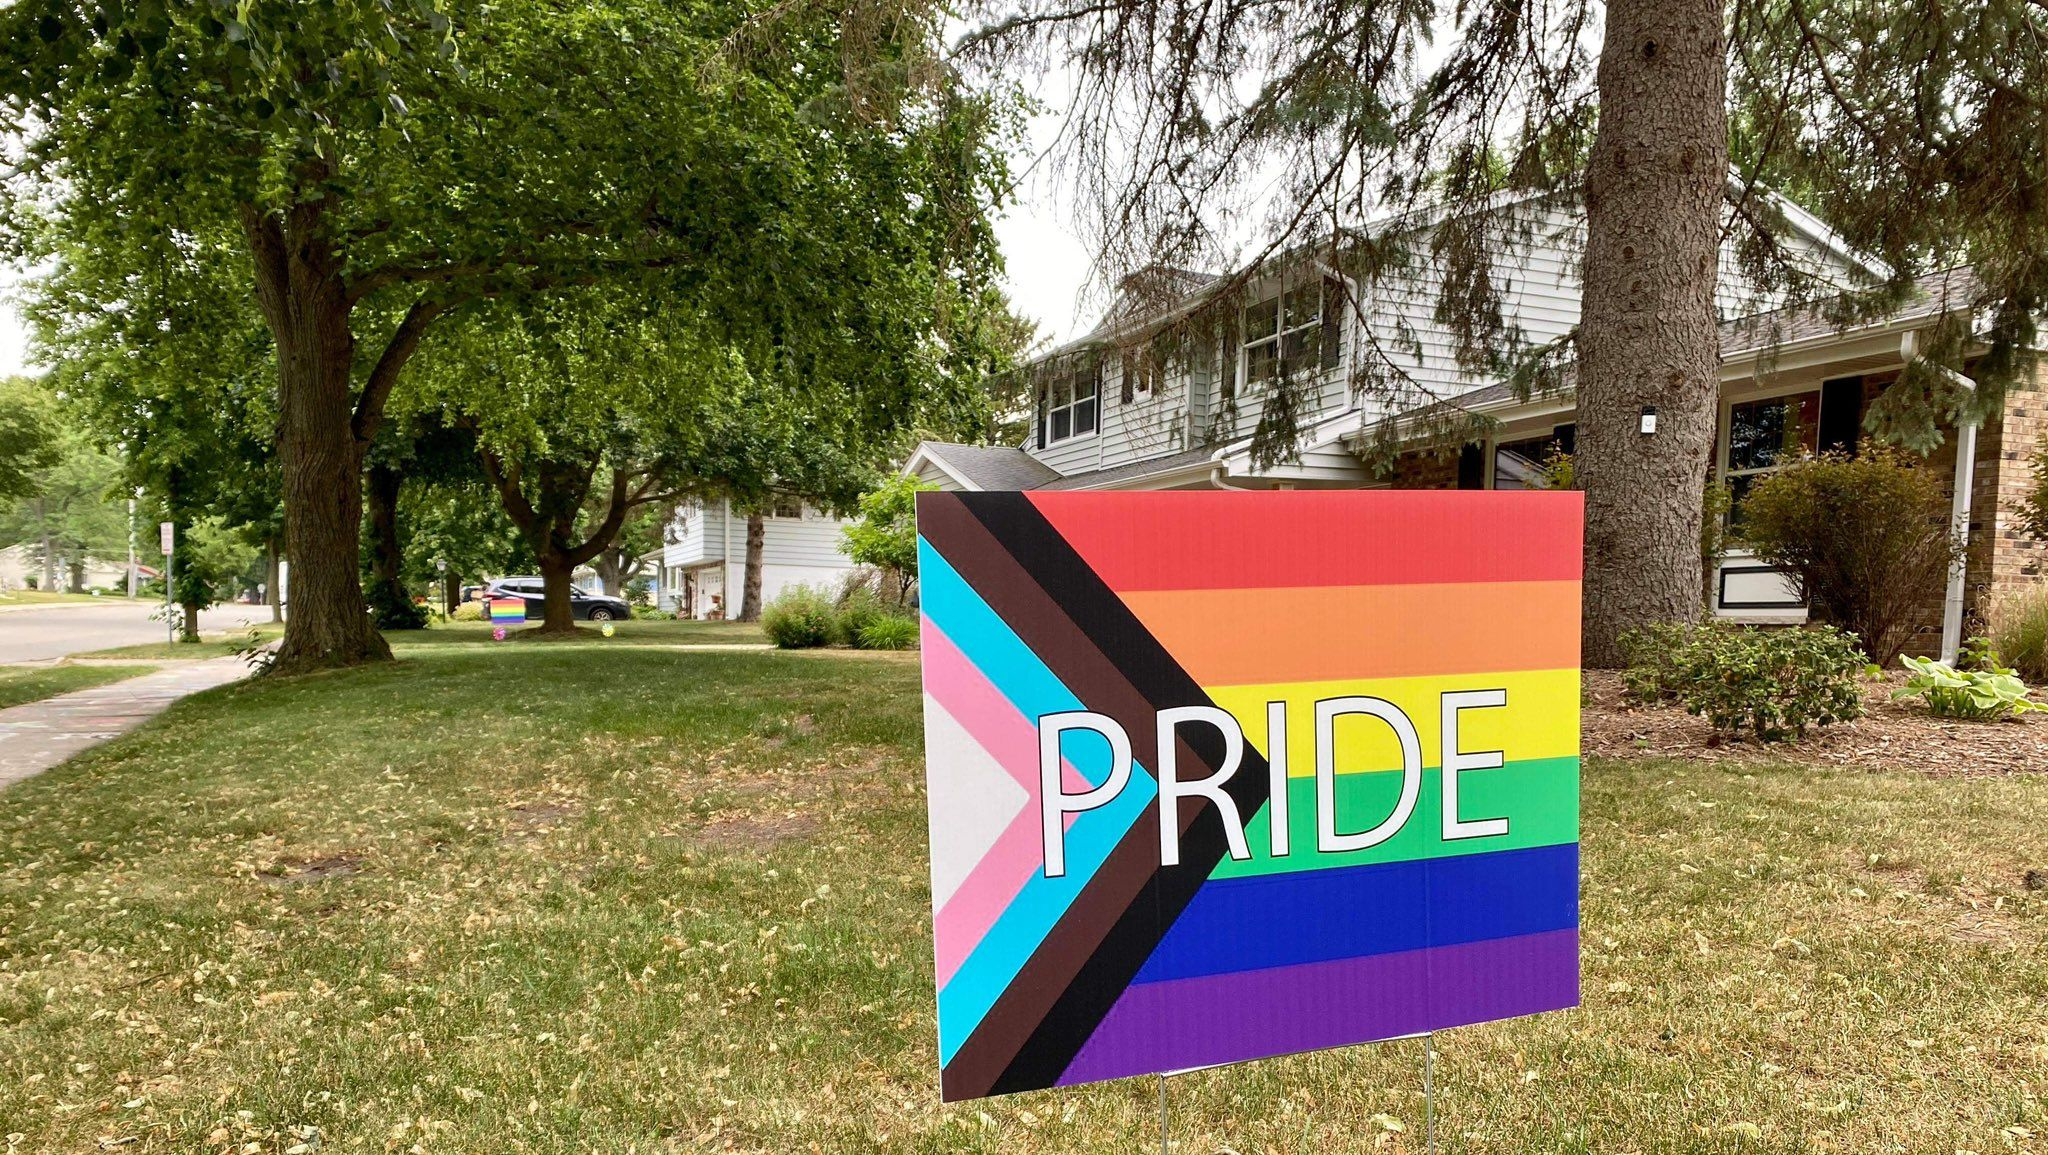 Community responds after Pride signs continue getting stolen and vandalized